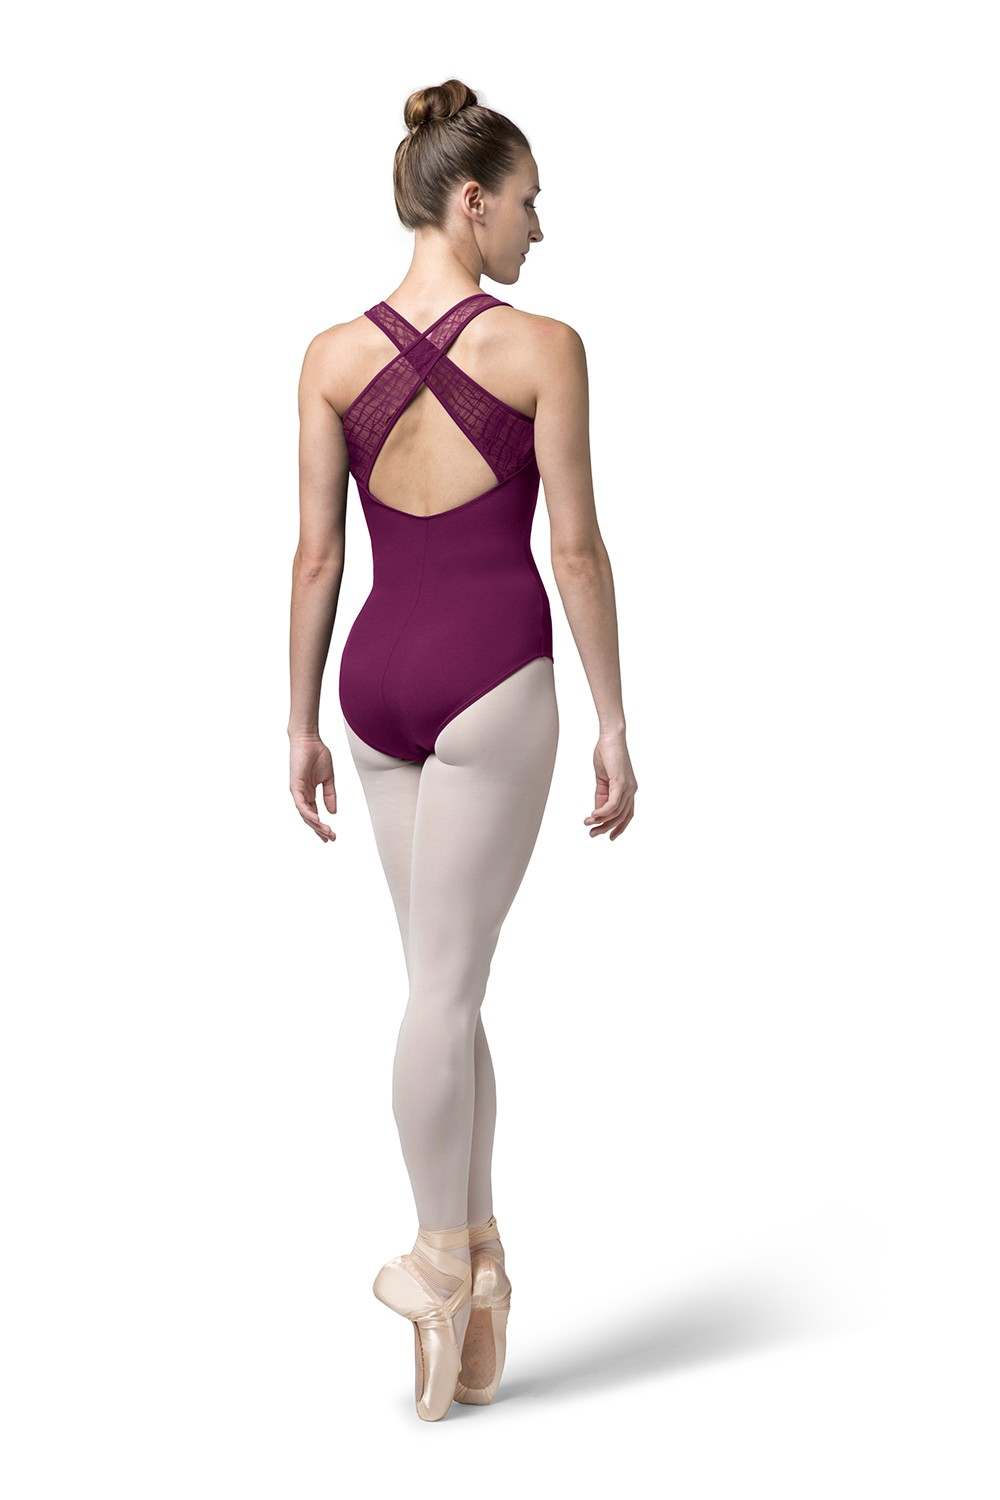 3ef04801f500 Elegant Women s Ballet   Dance Leotards - BLOCH® Shop UK